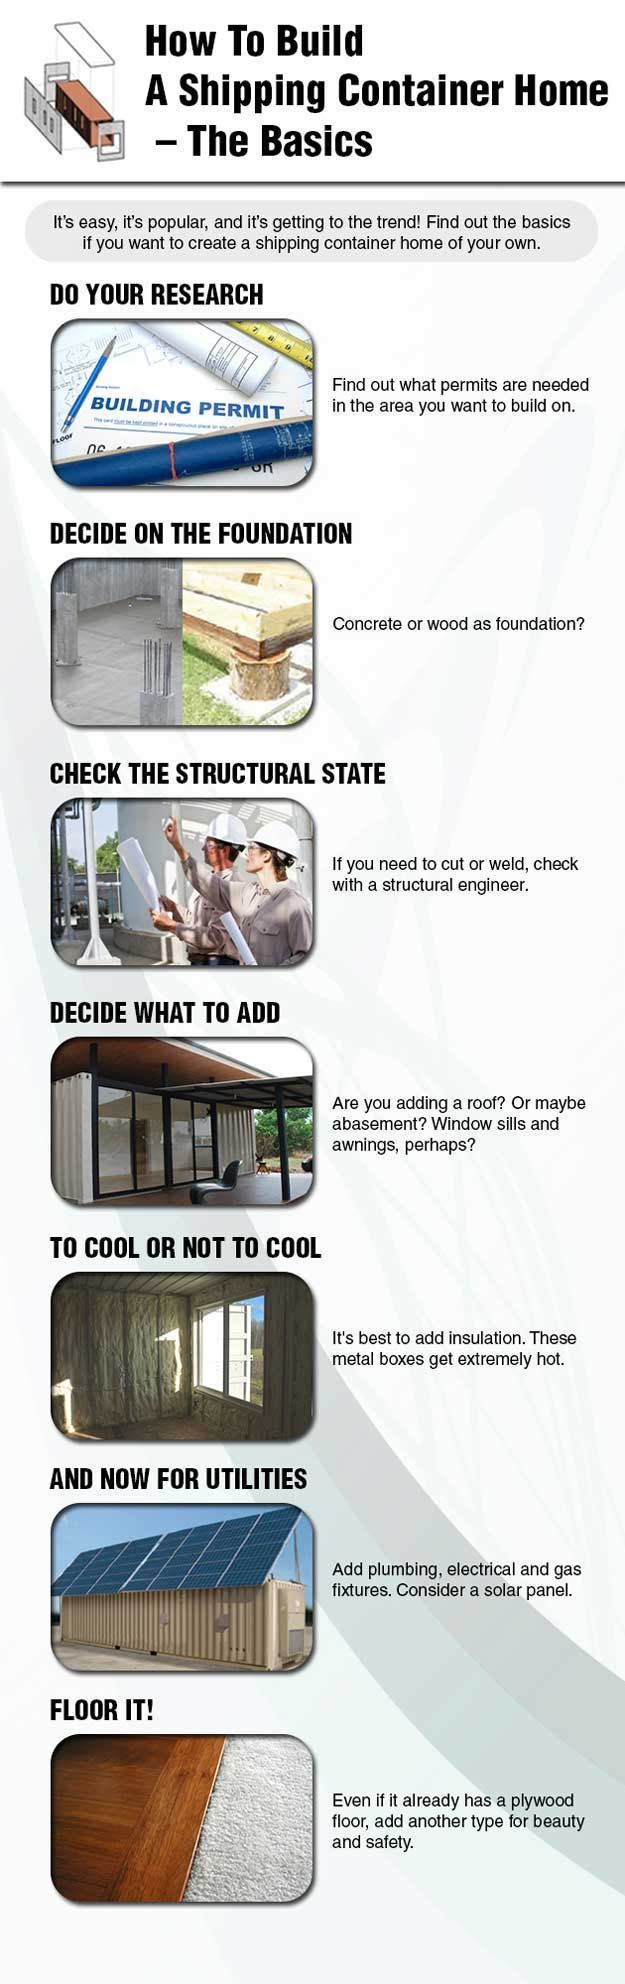 How To Build Your Own Shipping Container Home | Design Services, Primer And  Building